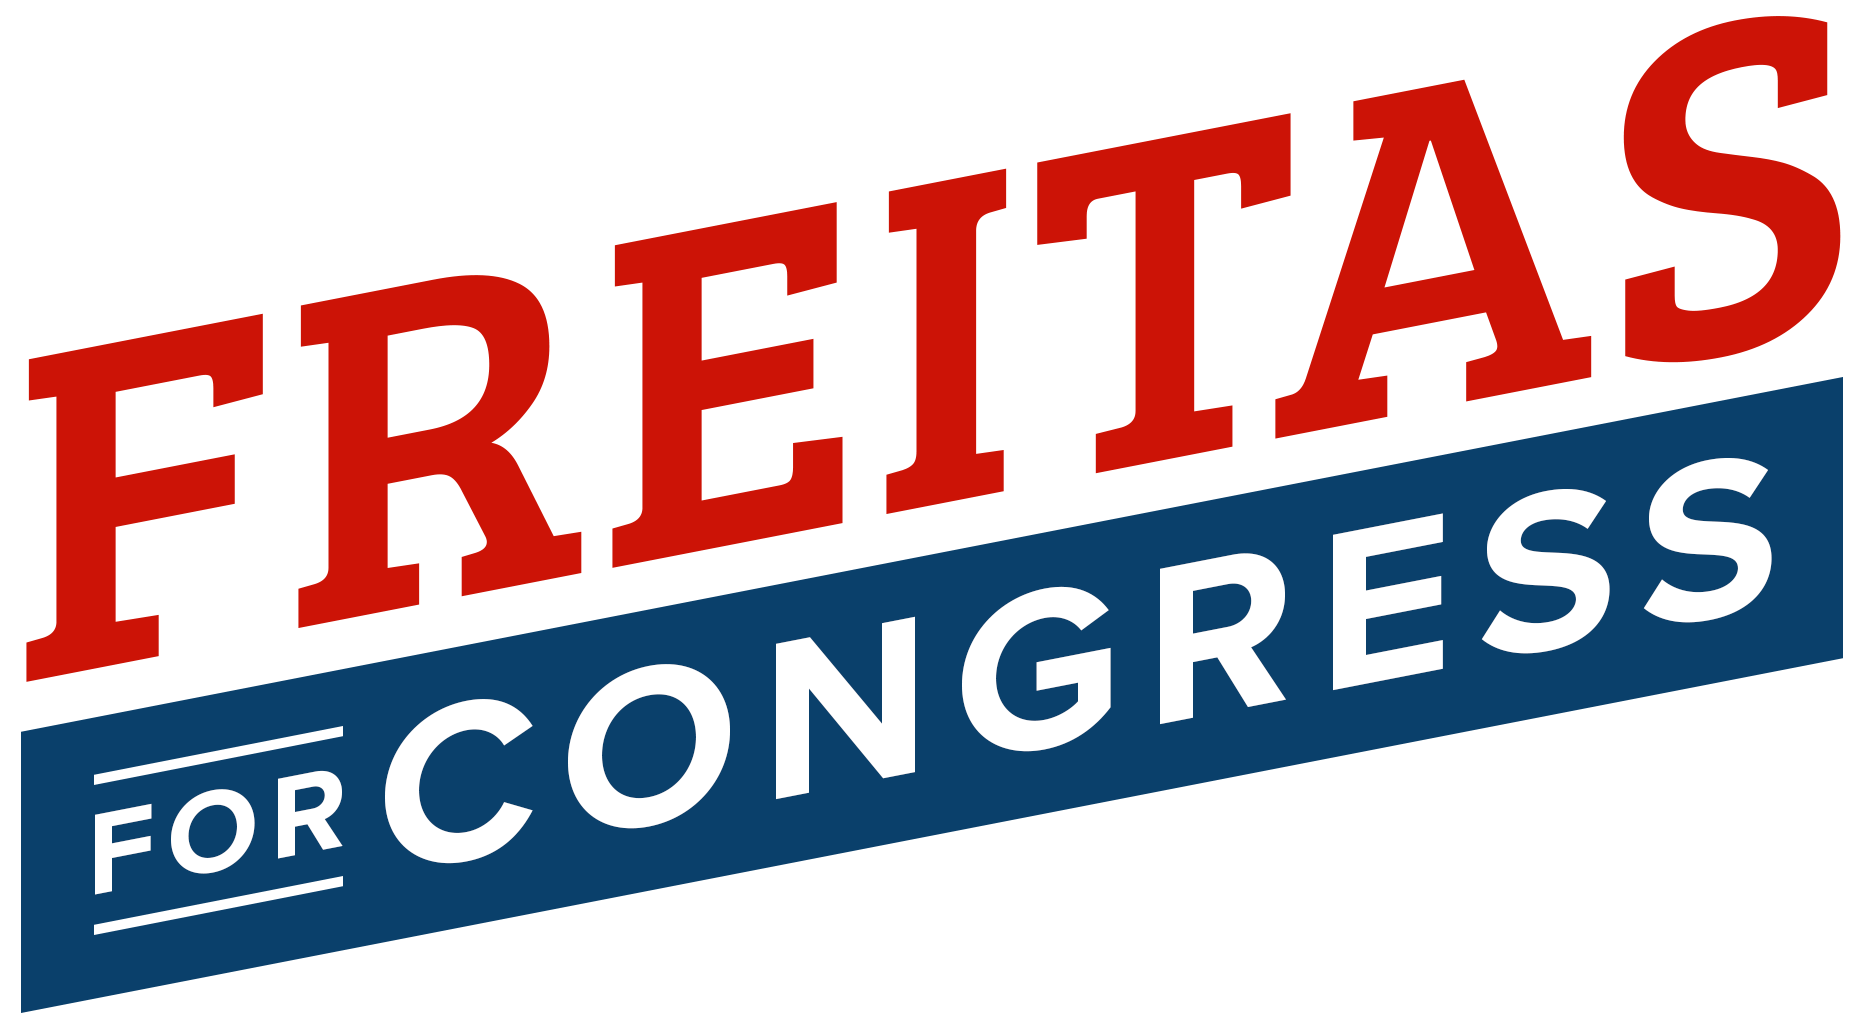 Freitascongresslogo ontransparent